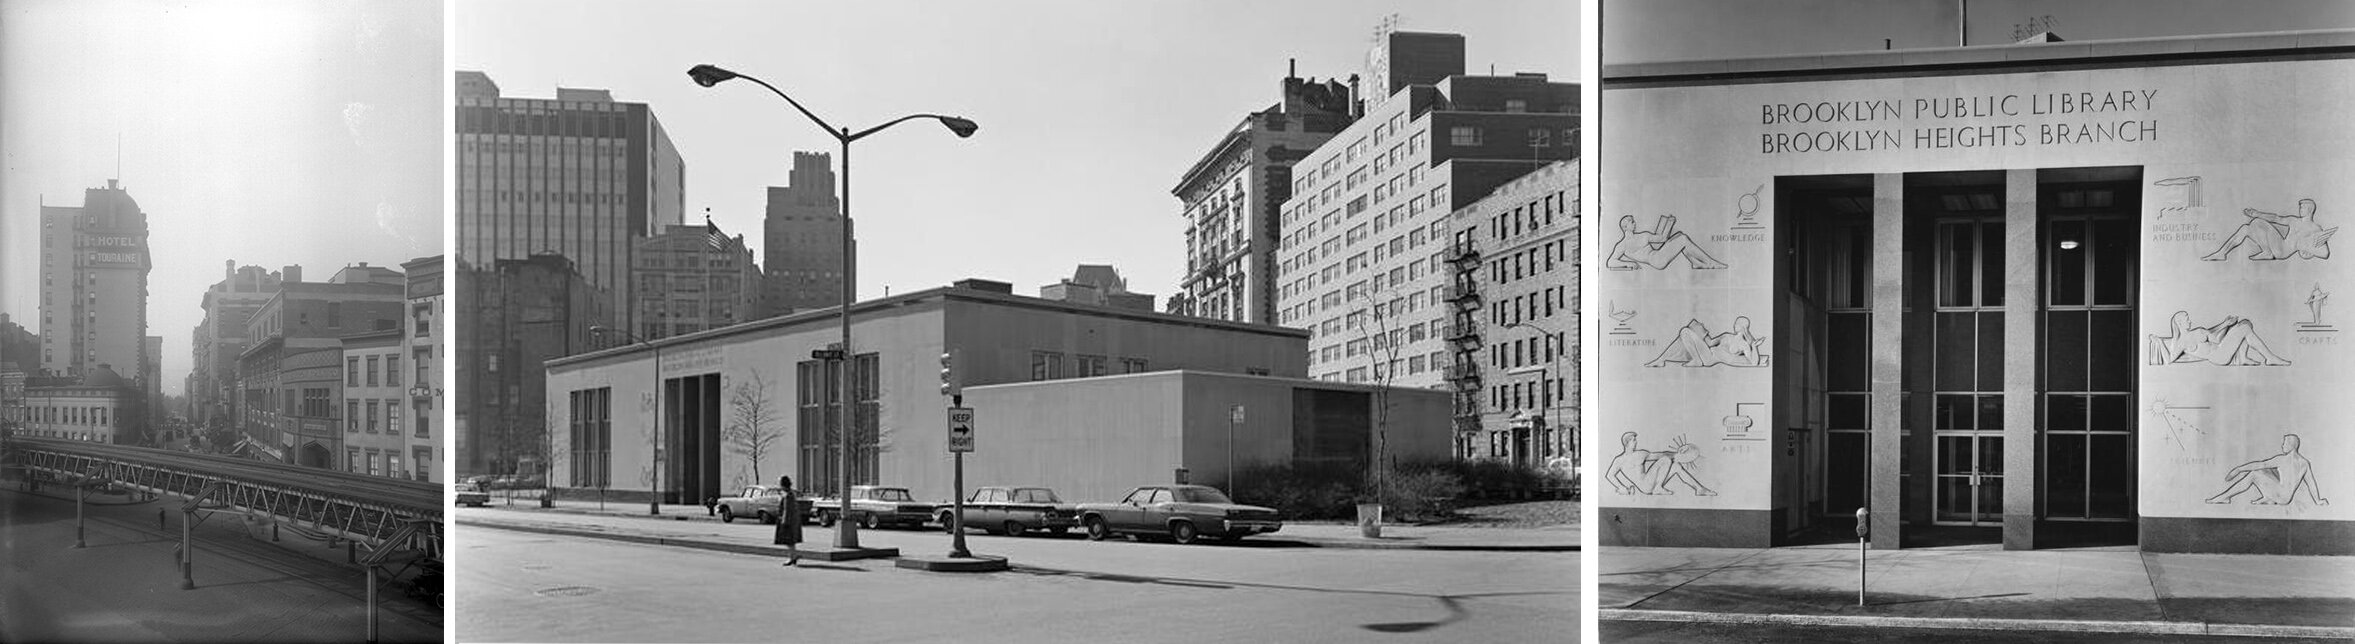 Left: The future site of One Clinton (intersection of Clinton and Old Fulton Street) in 1922. Middle and right: Brooklyn Heights Public Library after opening.